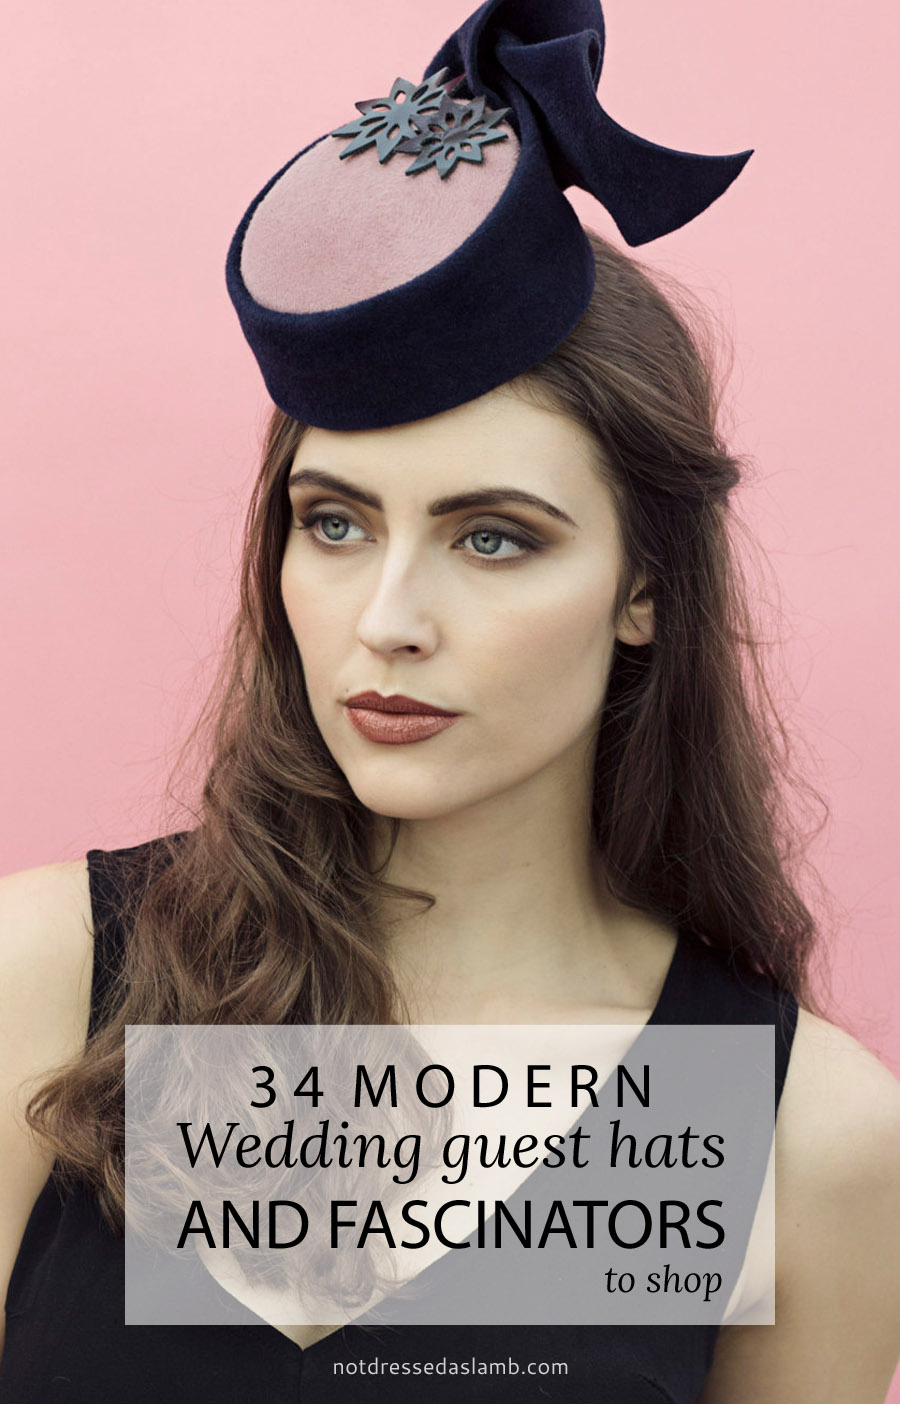 34 Modern Wedding Guest Hats and Fascinators